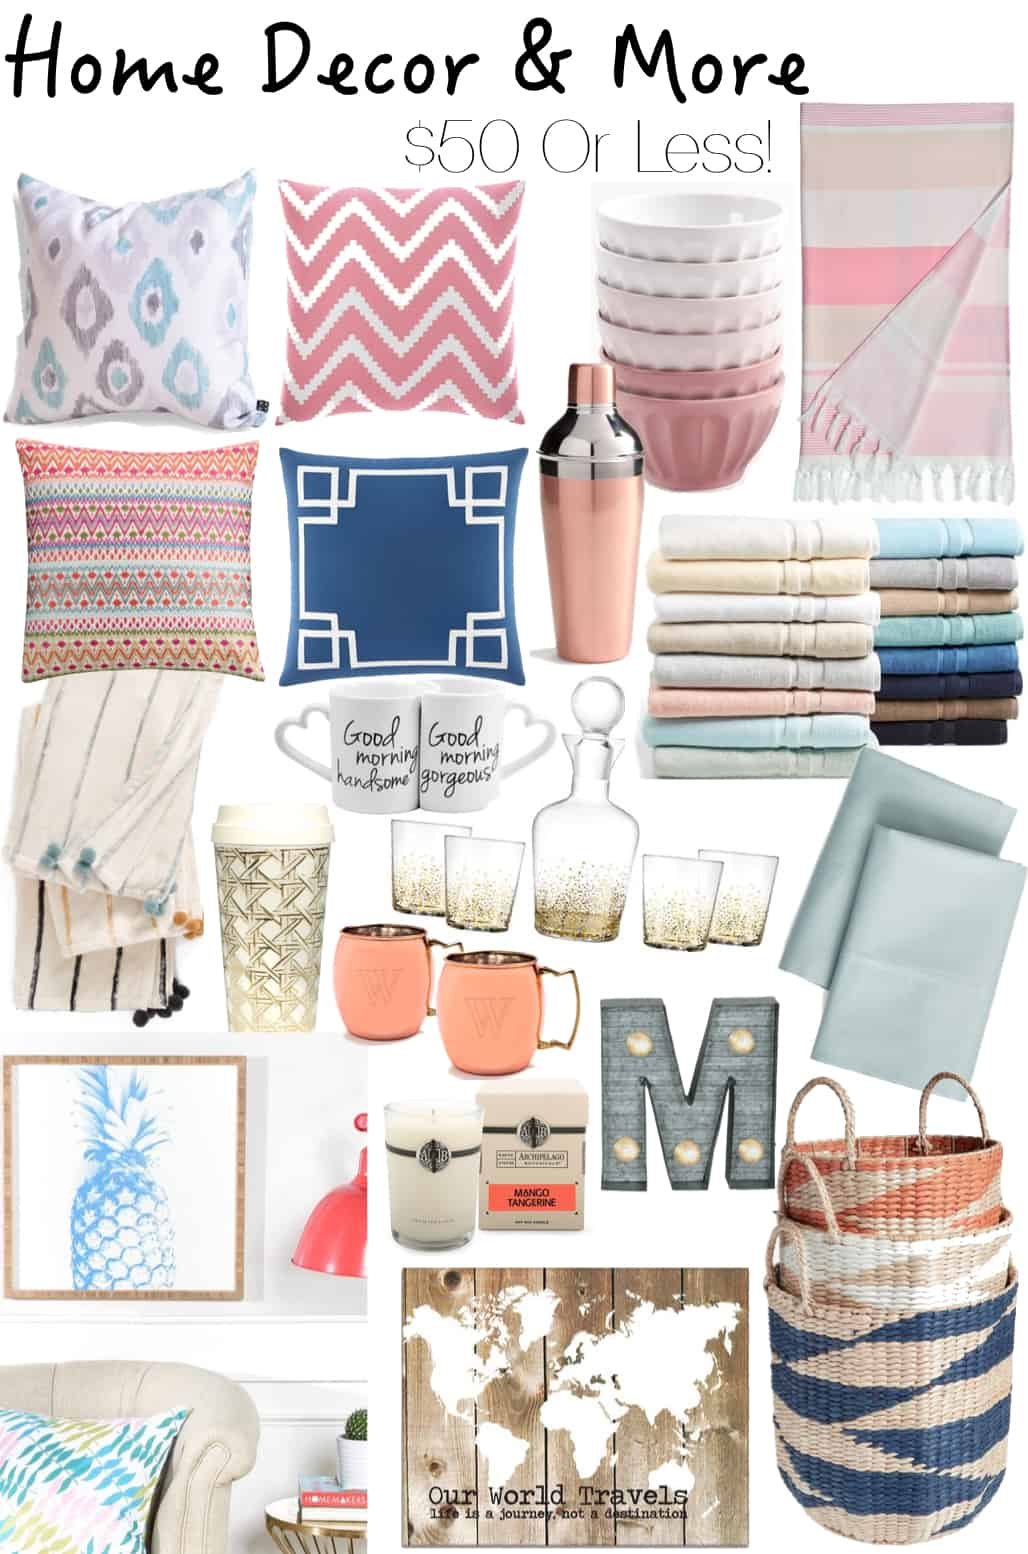 Home decor sale finds 50 or less katie 39 s bliss Nordstrom home decor sale